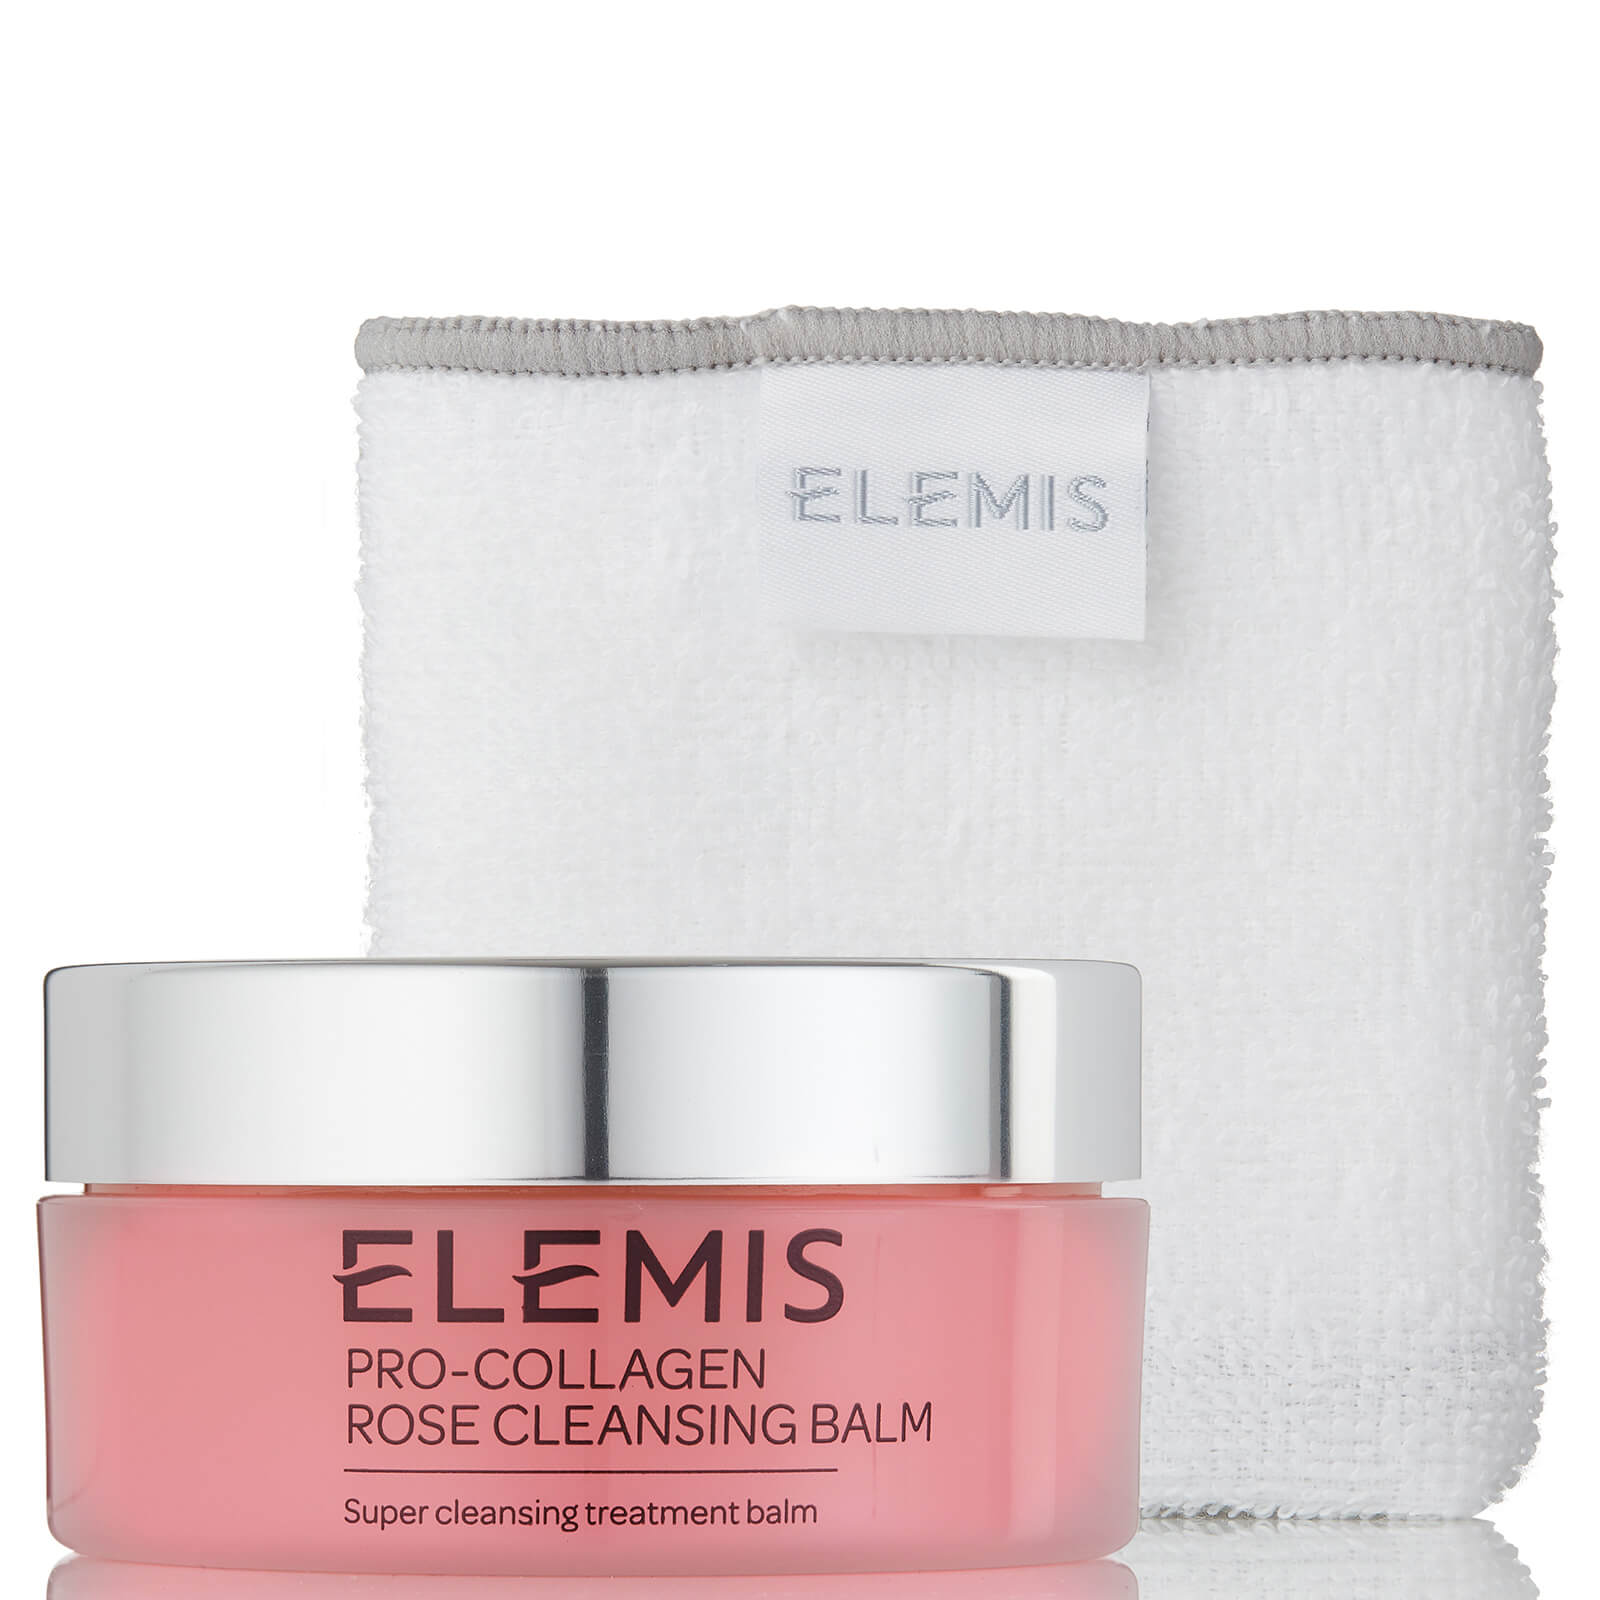 d0858e74b7 ELEMIS Pro-Collagen Rose Cleansing Balm 105g | Free Shipping | Lookfantastic